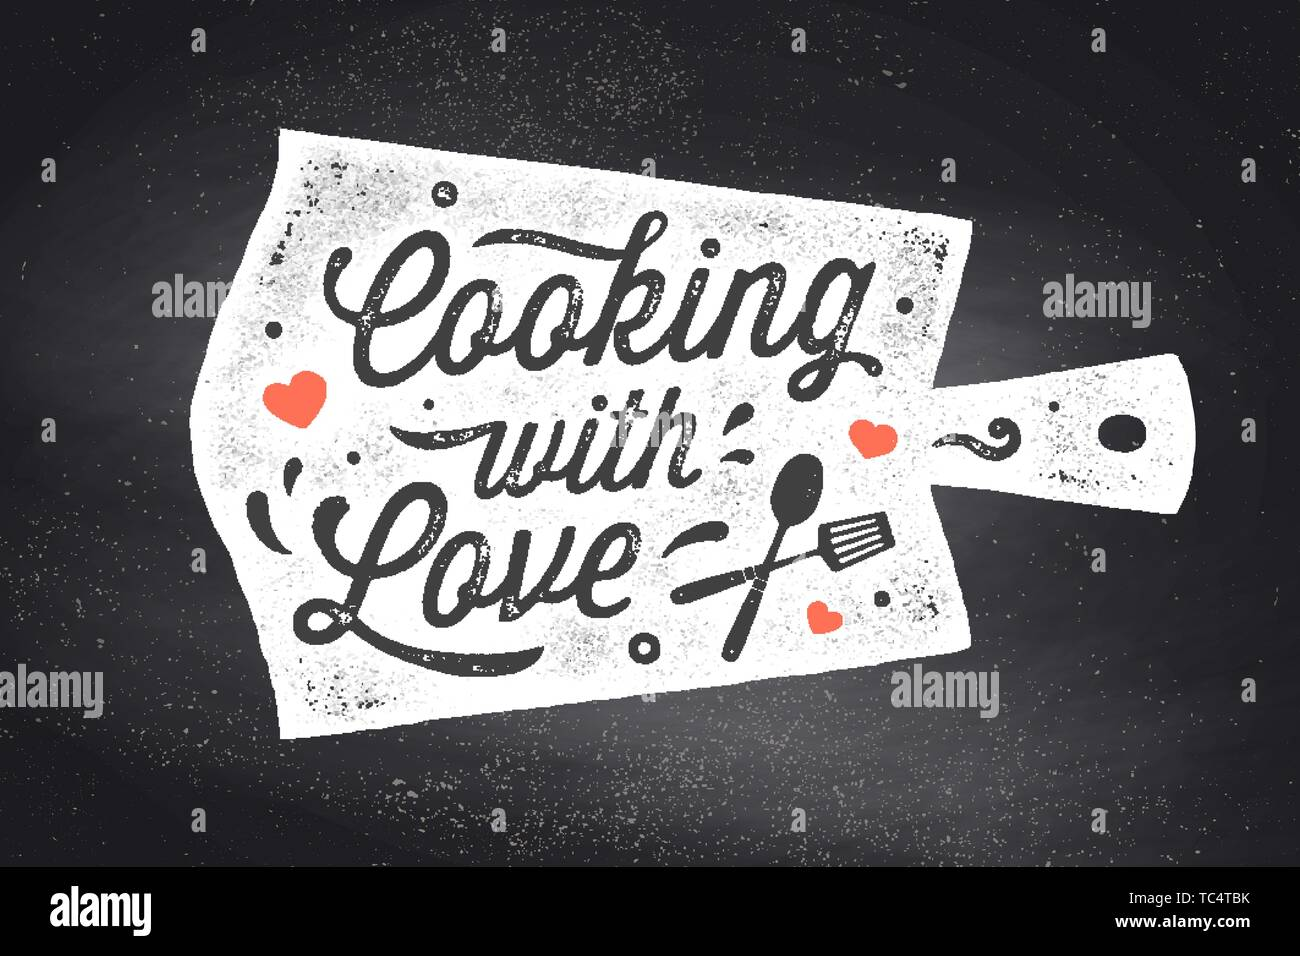 Cooking with Love. Kitchen poster. Kitchen wall decor, sign